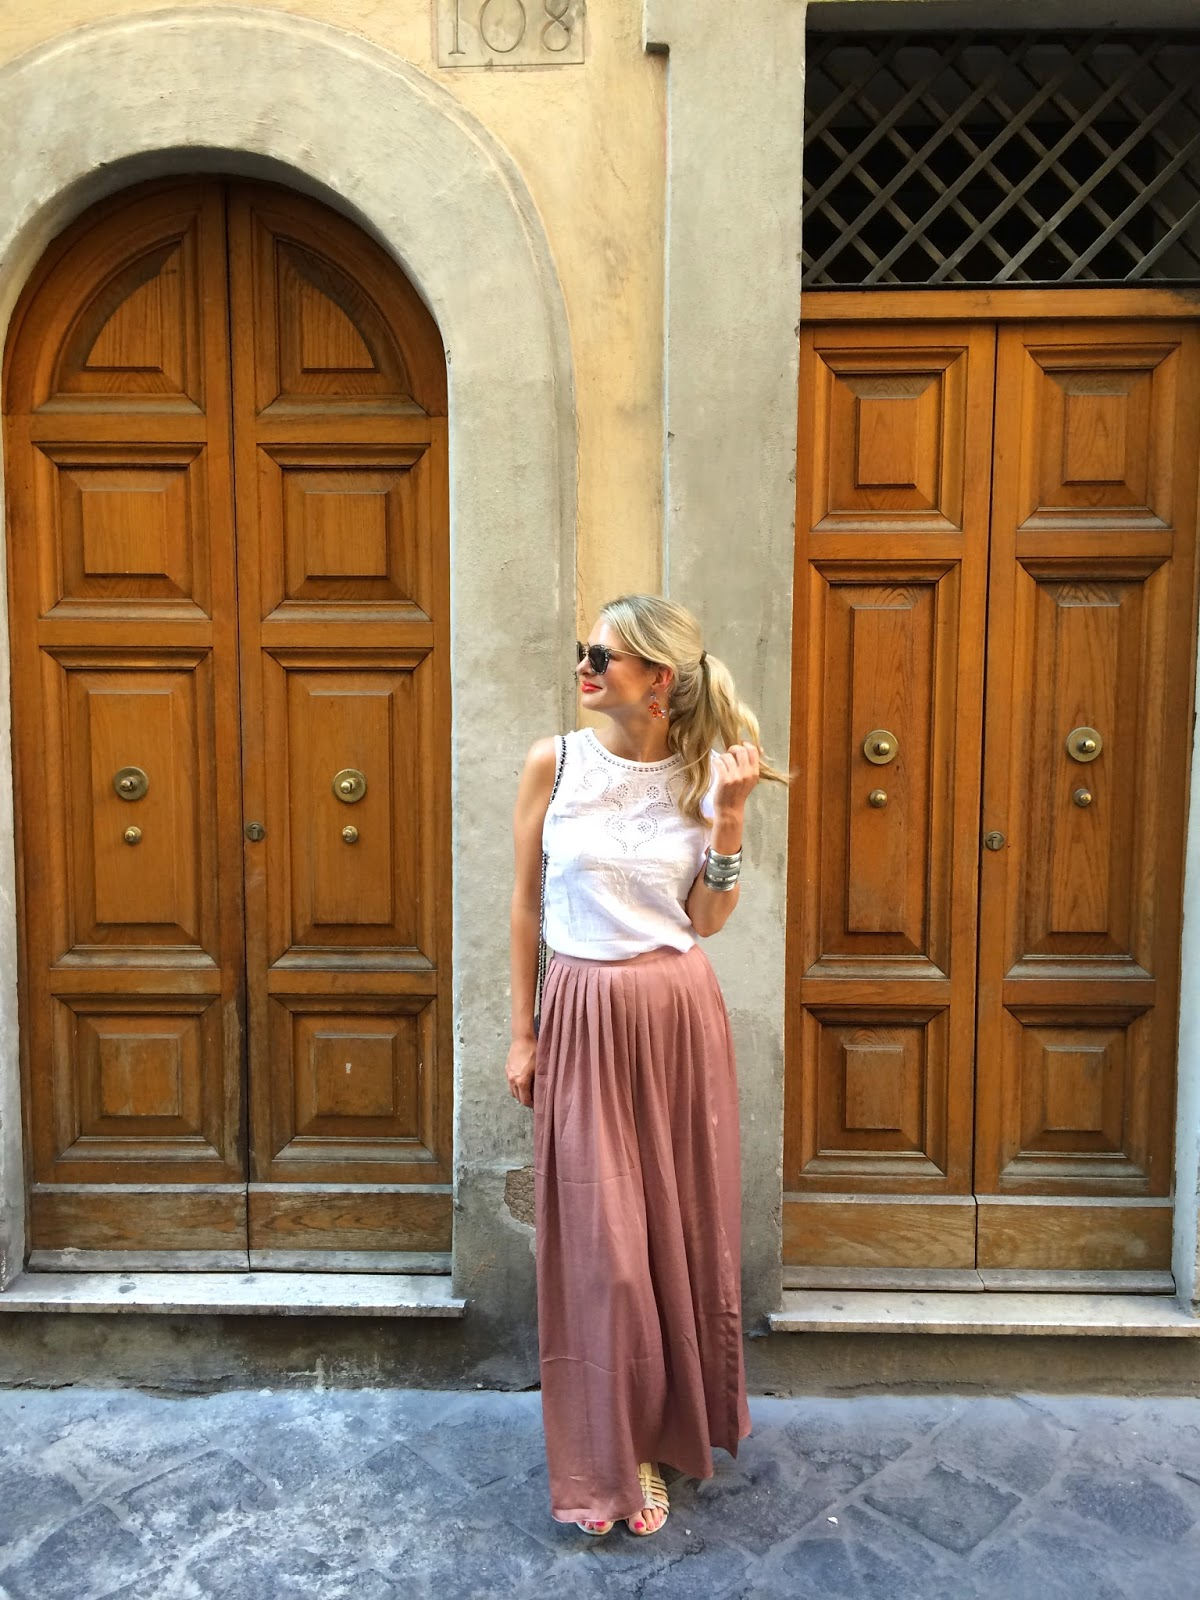 asos maxi skirt, maxi skirt with split, street style, rome, roma, rom, italian, italy street style, maxi skirt and white top, gladiator sandals, wallet on chain, chanel bag, hm arm cuff, blonde fashion blogger